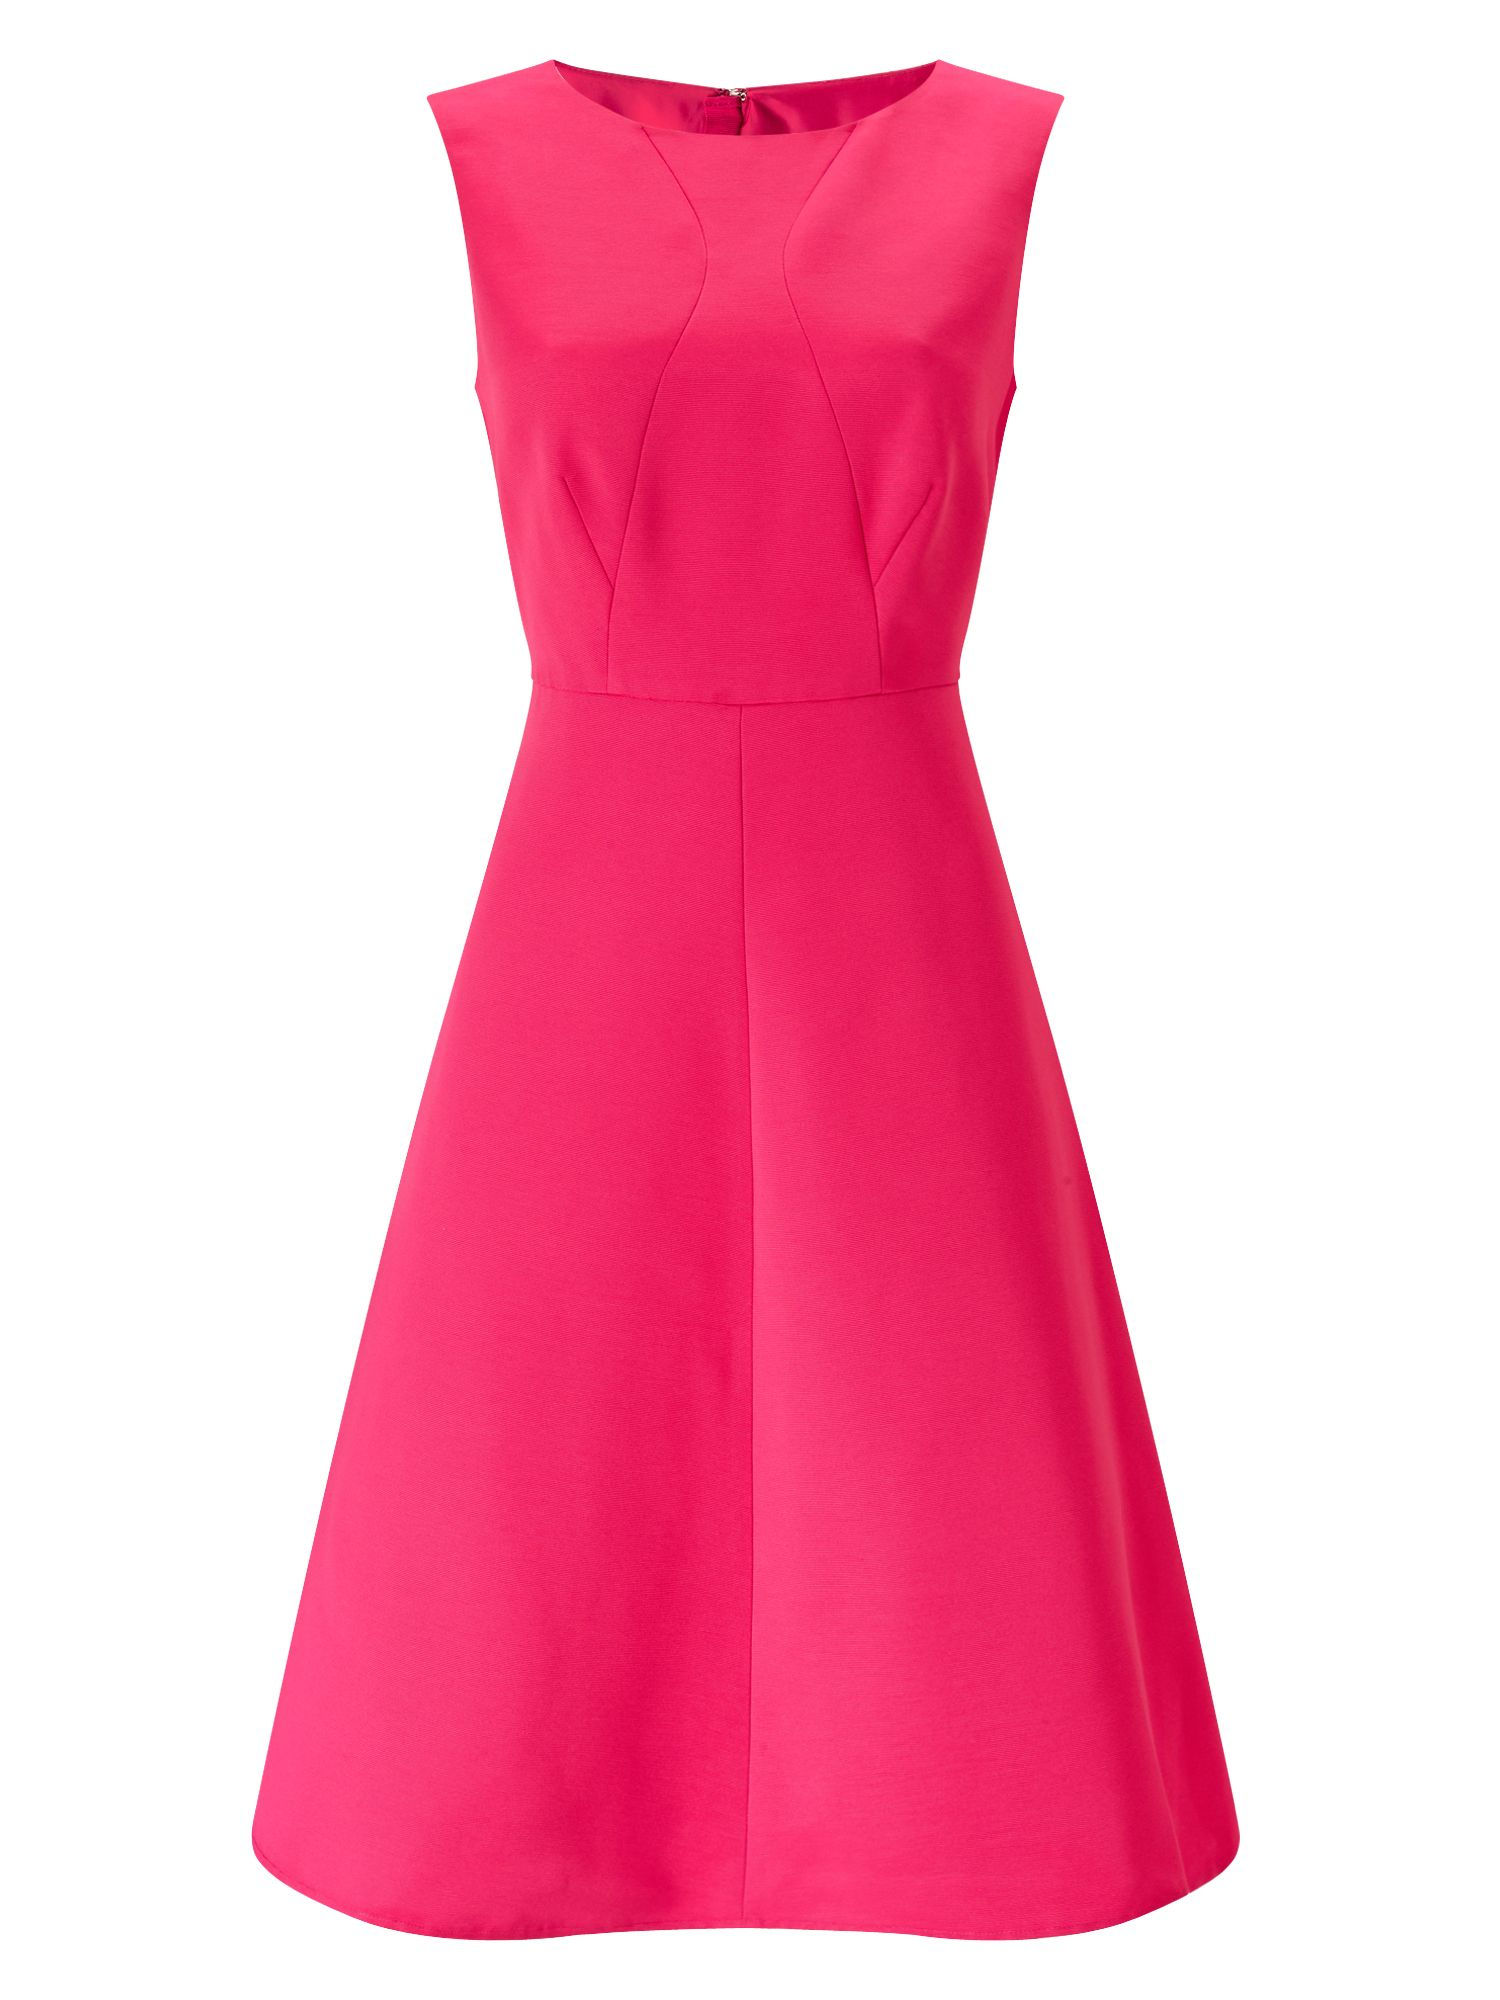 Precis Petite Petite Fit And Flare Dress, Pink